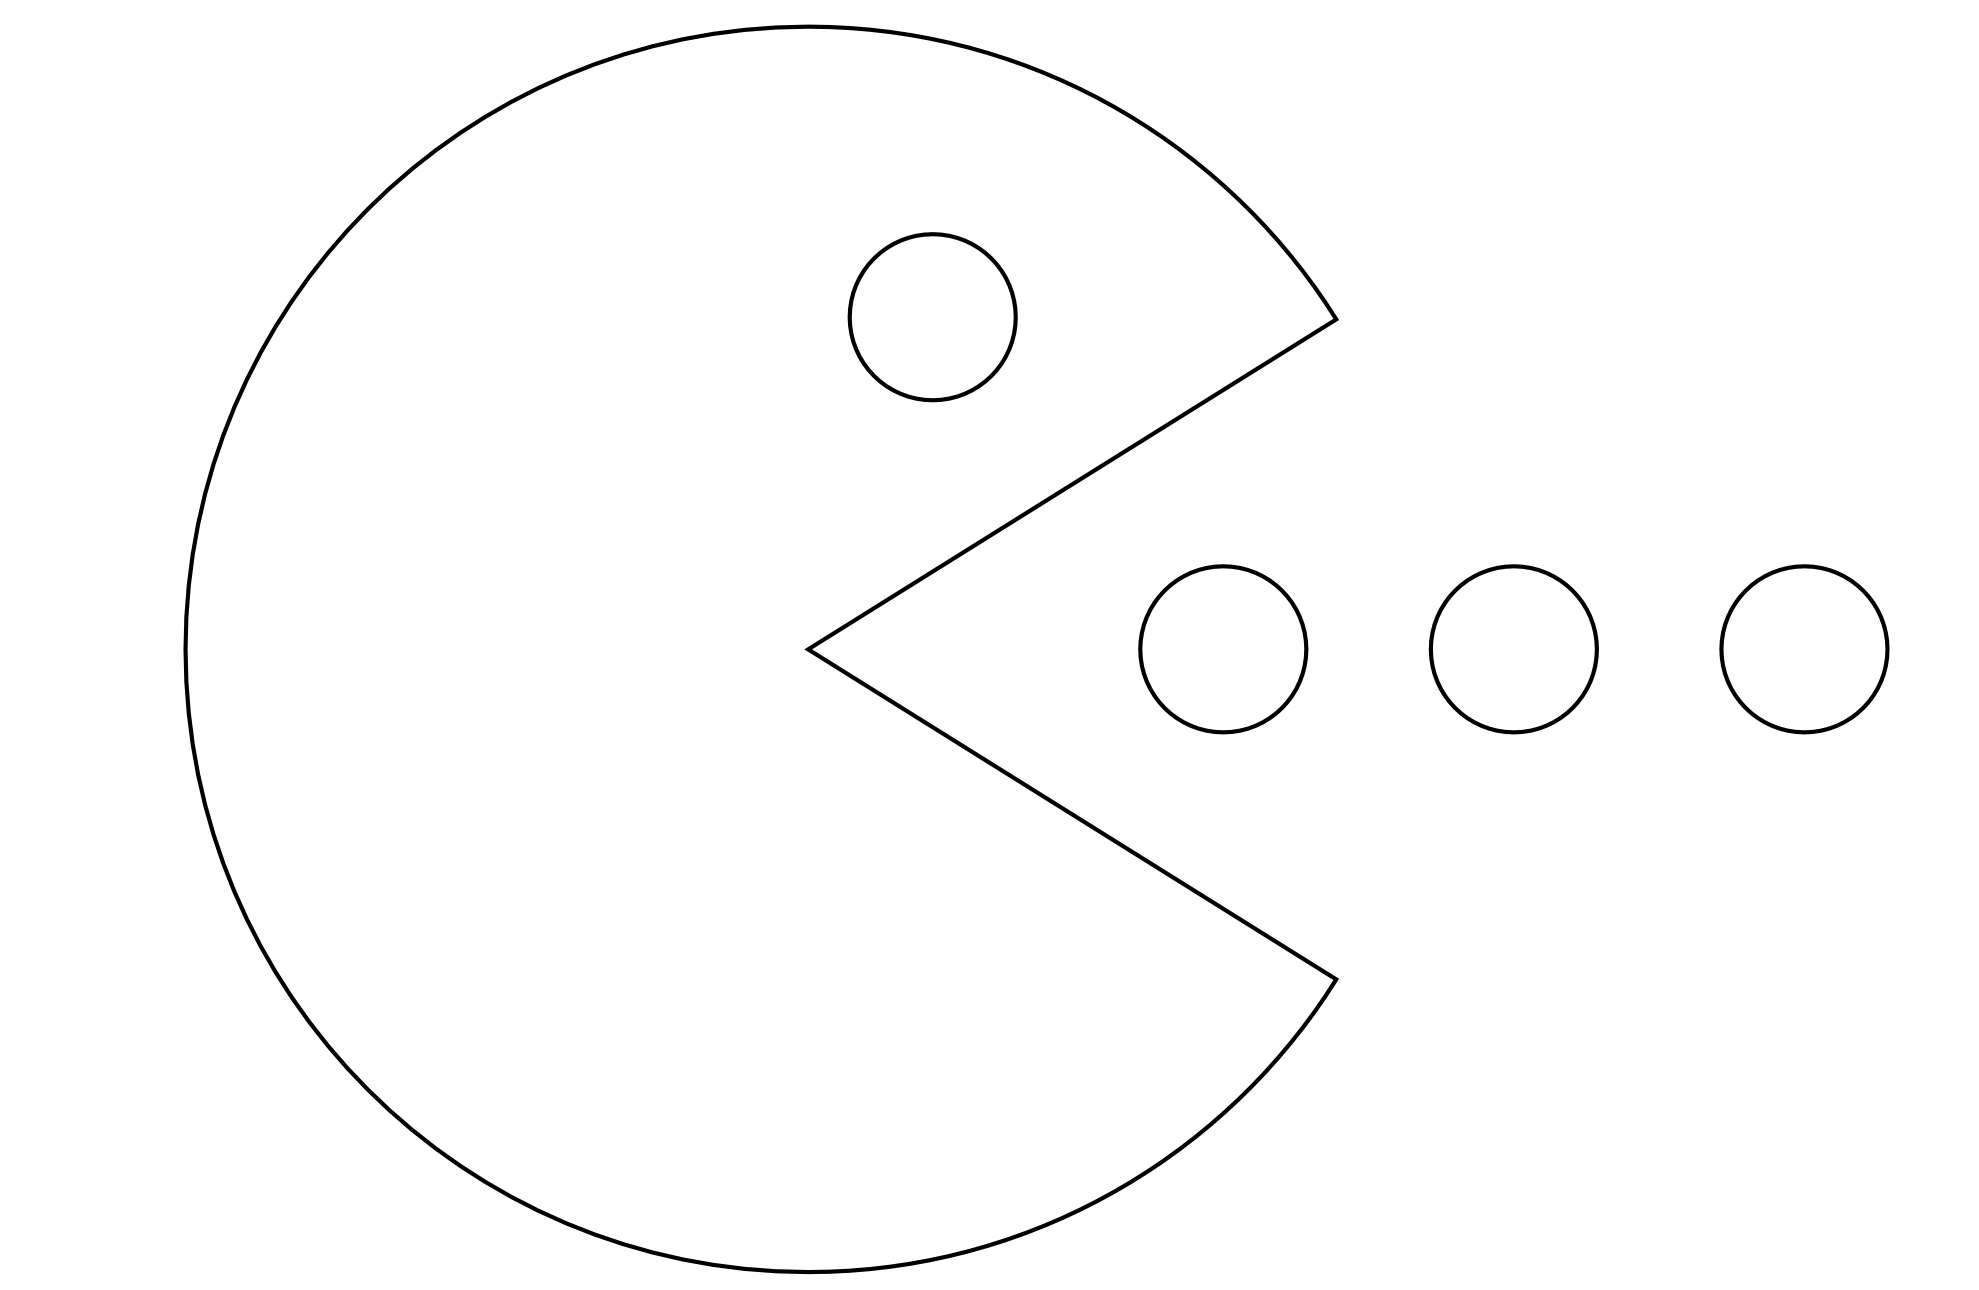 B pac man line. Pacman clipart black and white